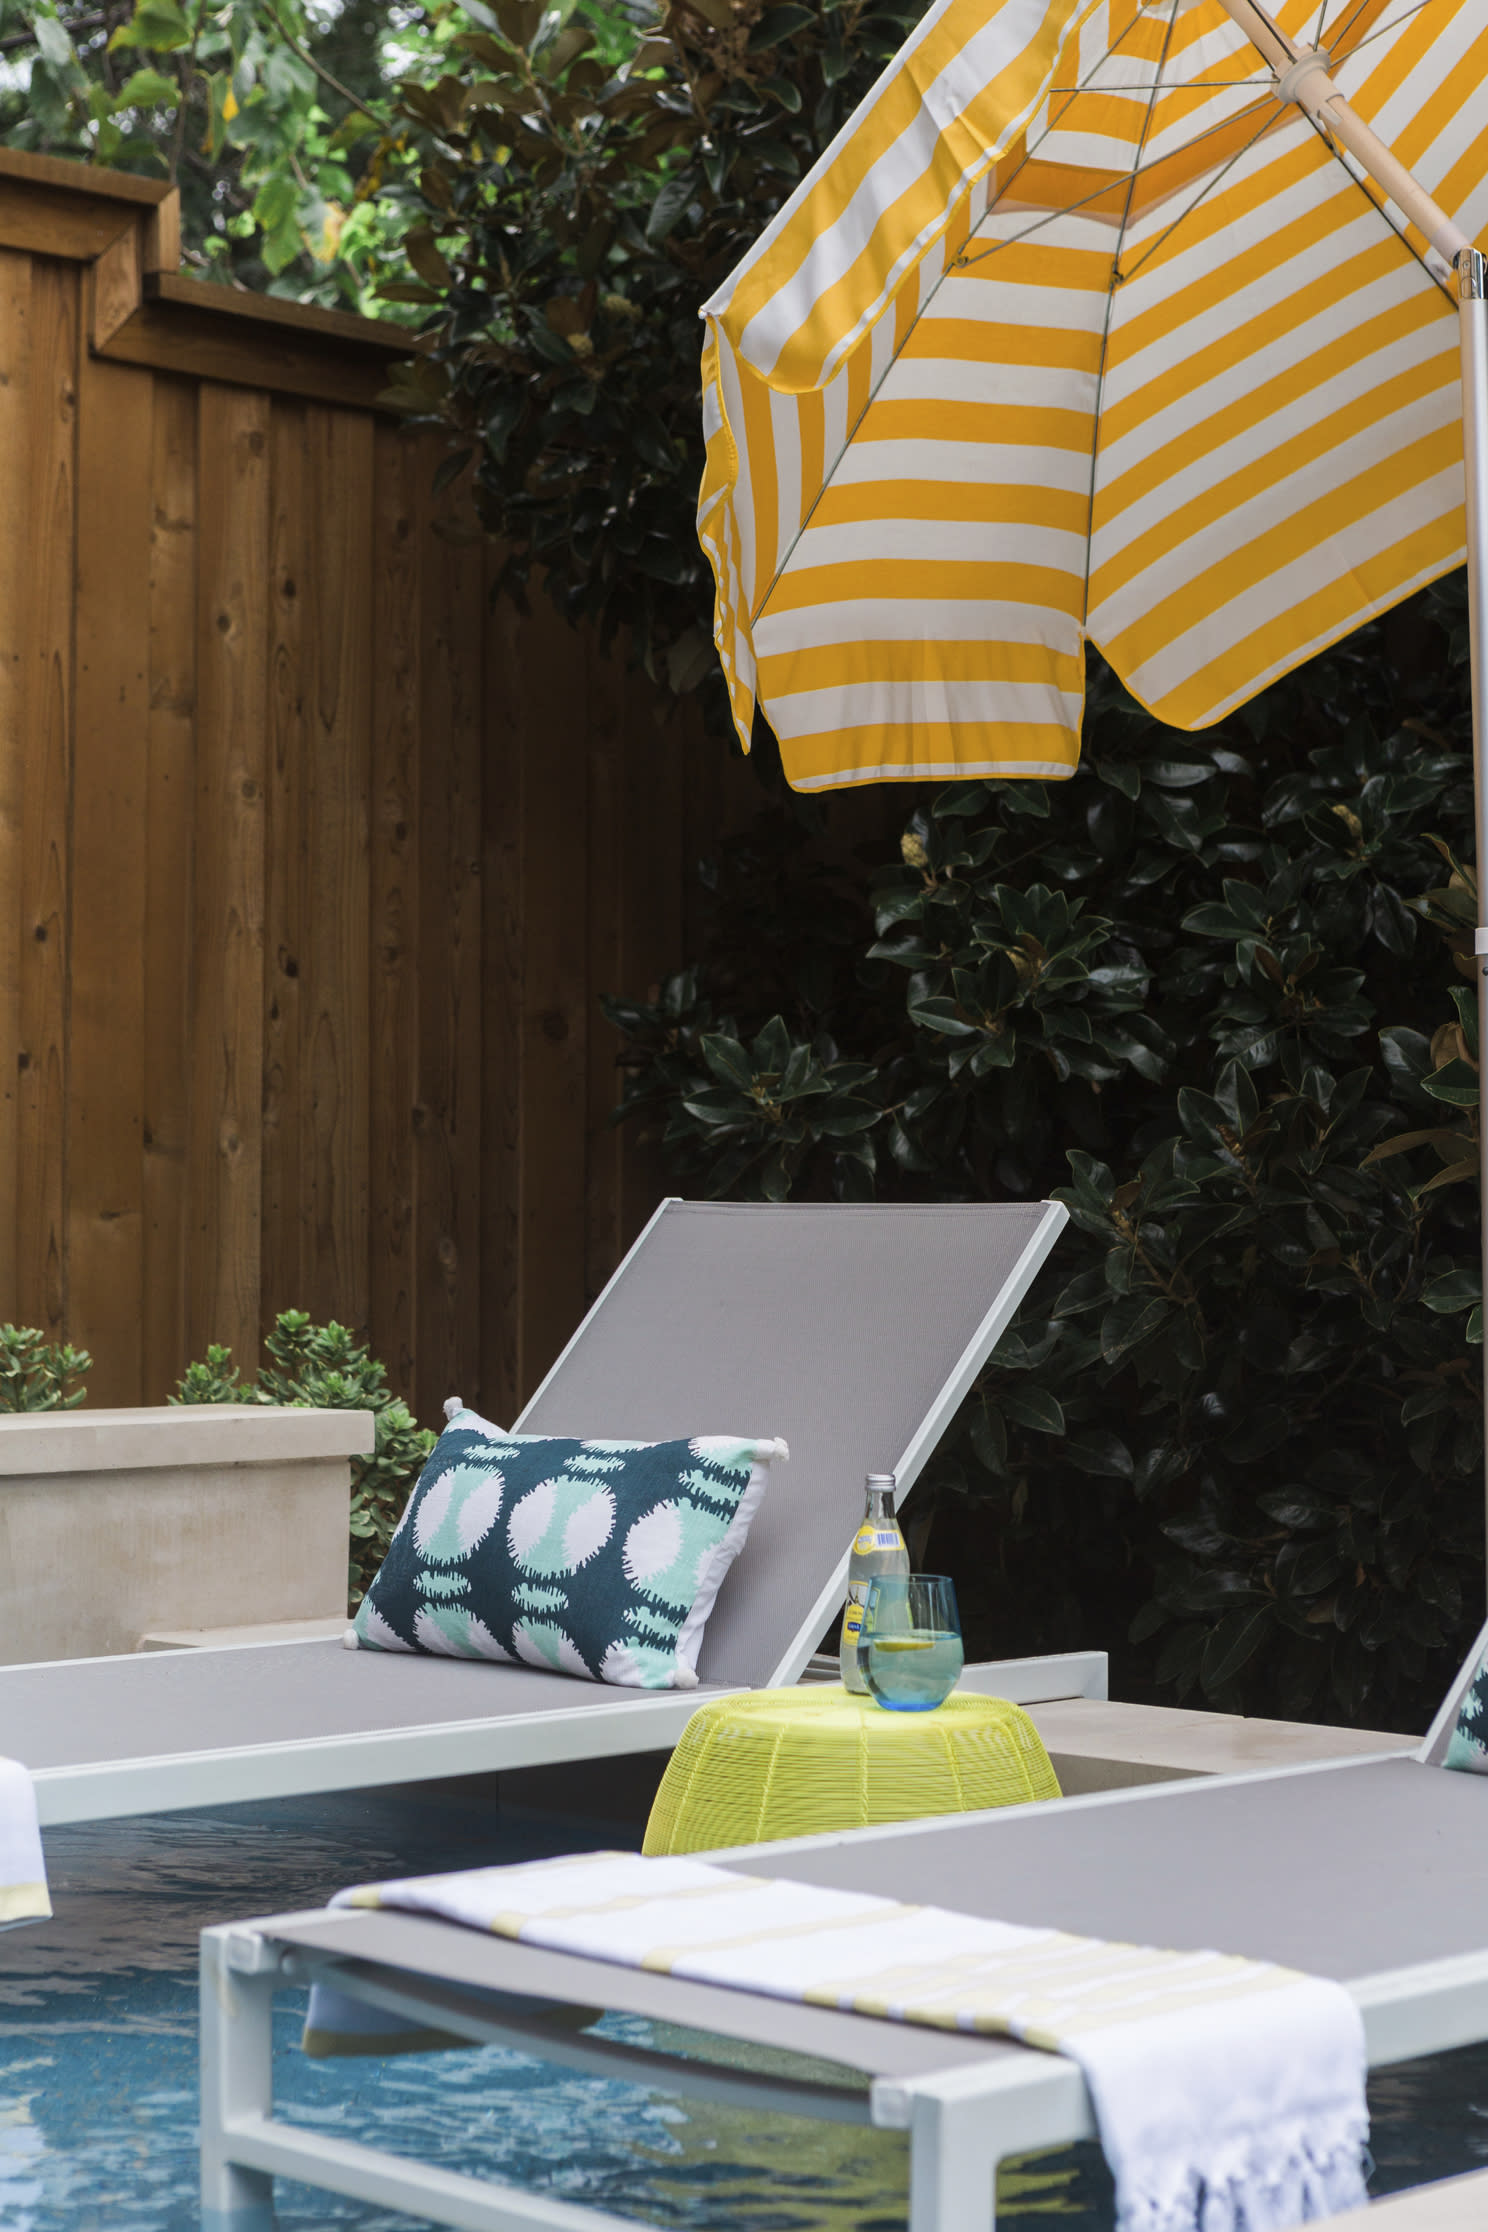 This undated photo shows a home in Texas' backyard area designed by Abbe Fenimore, founder of Studio Ten 25. The addition of stylish throw pillows and convenient cocktail tables next to poolside chaises can bring a bit of vacation resort experience to a backyard swimming pool. (Heather Hawkins/Abbe Fenimore via AP)